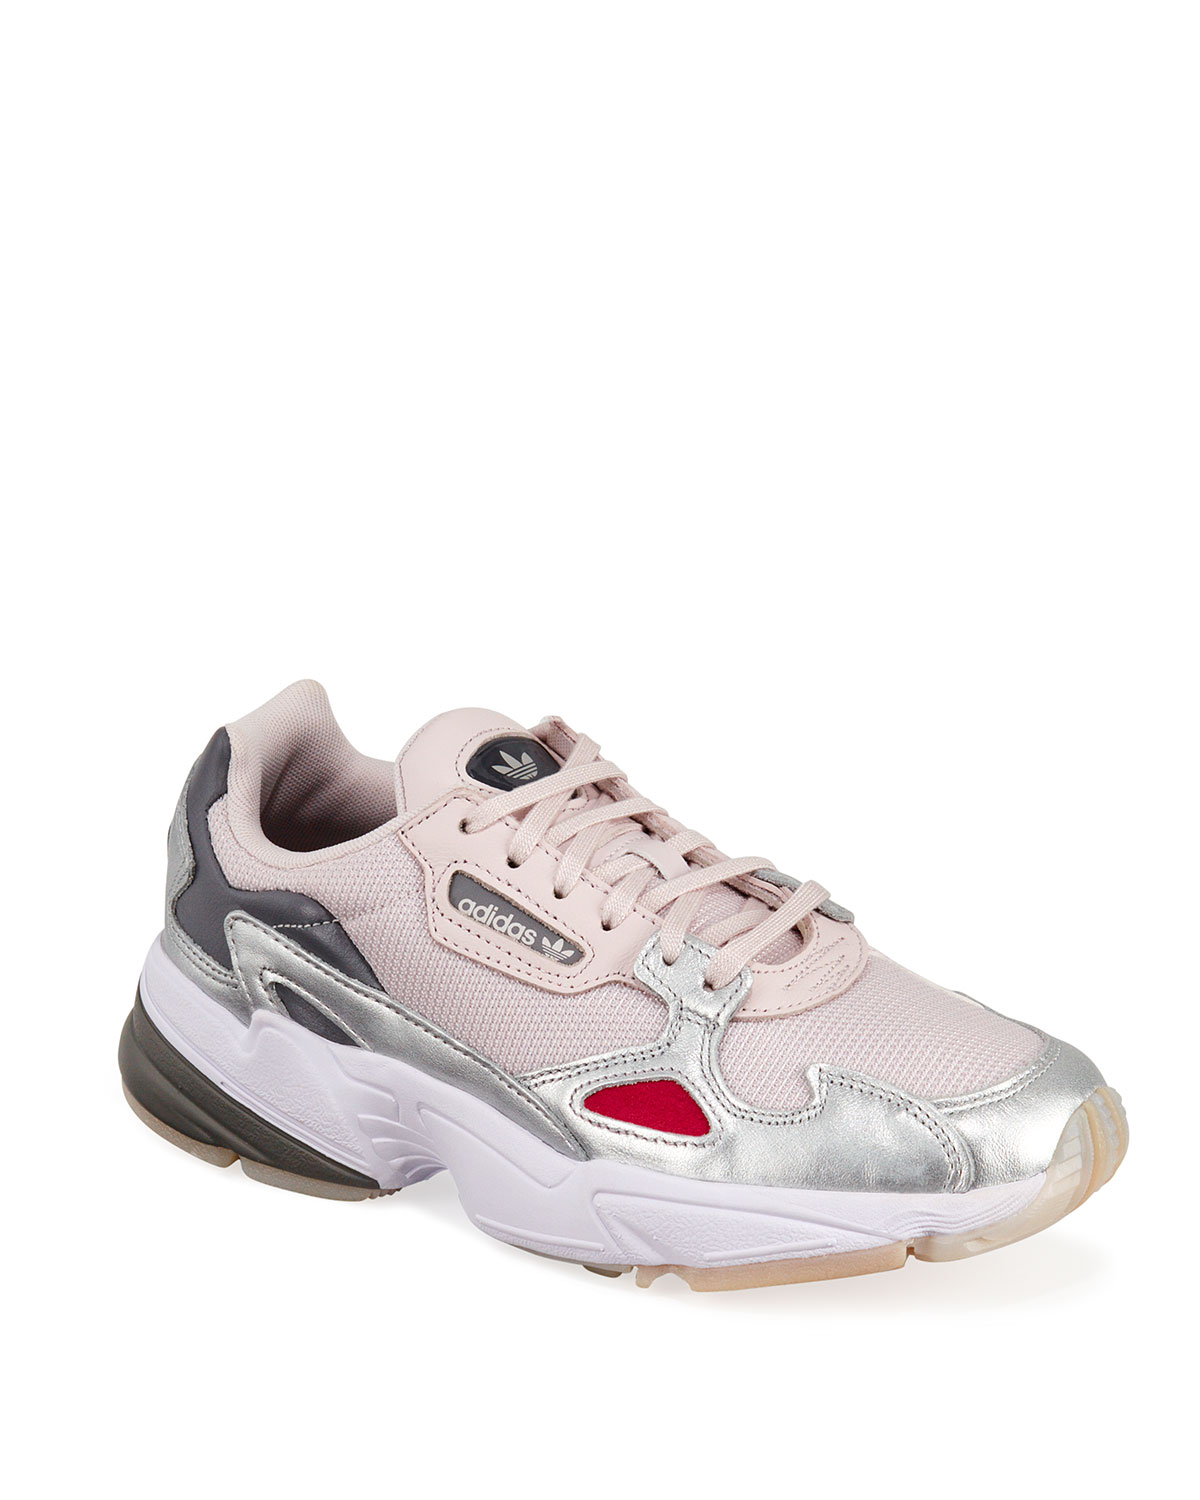 Adidas New York Trainer Sneakers Neiman Marcus    Adidas Falcon Metallic Trainer Sneakers   title=          Neiman Marcus